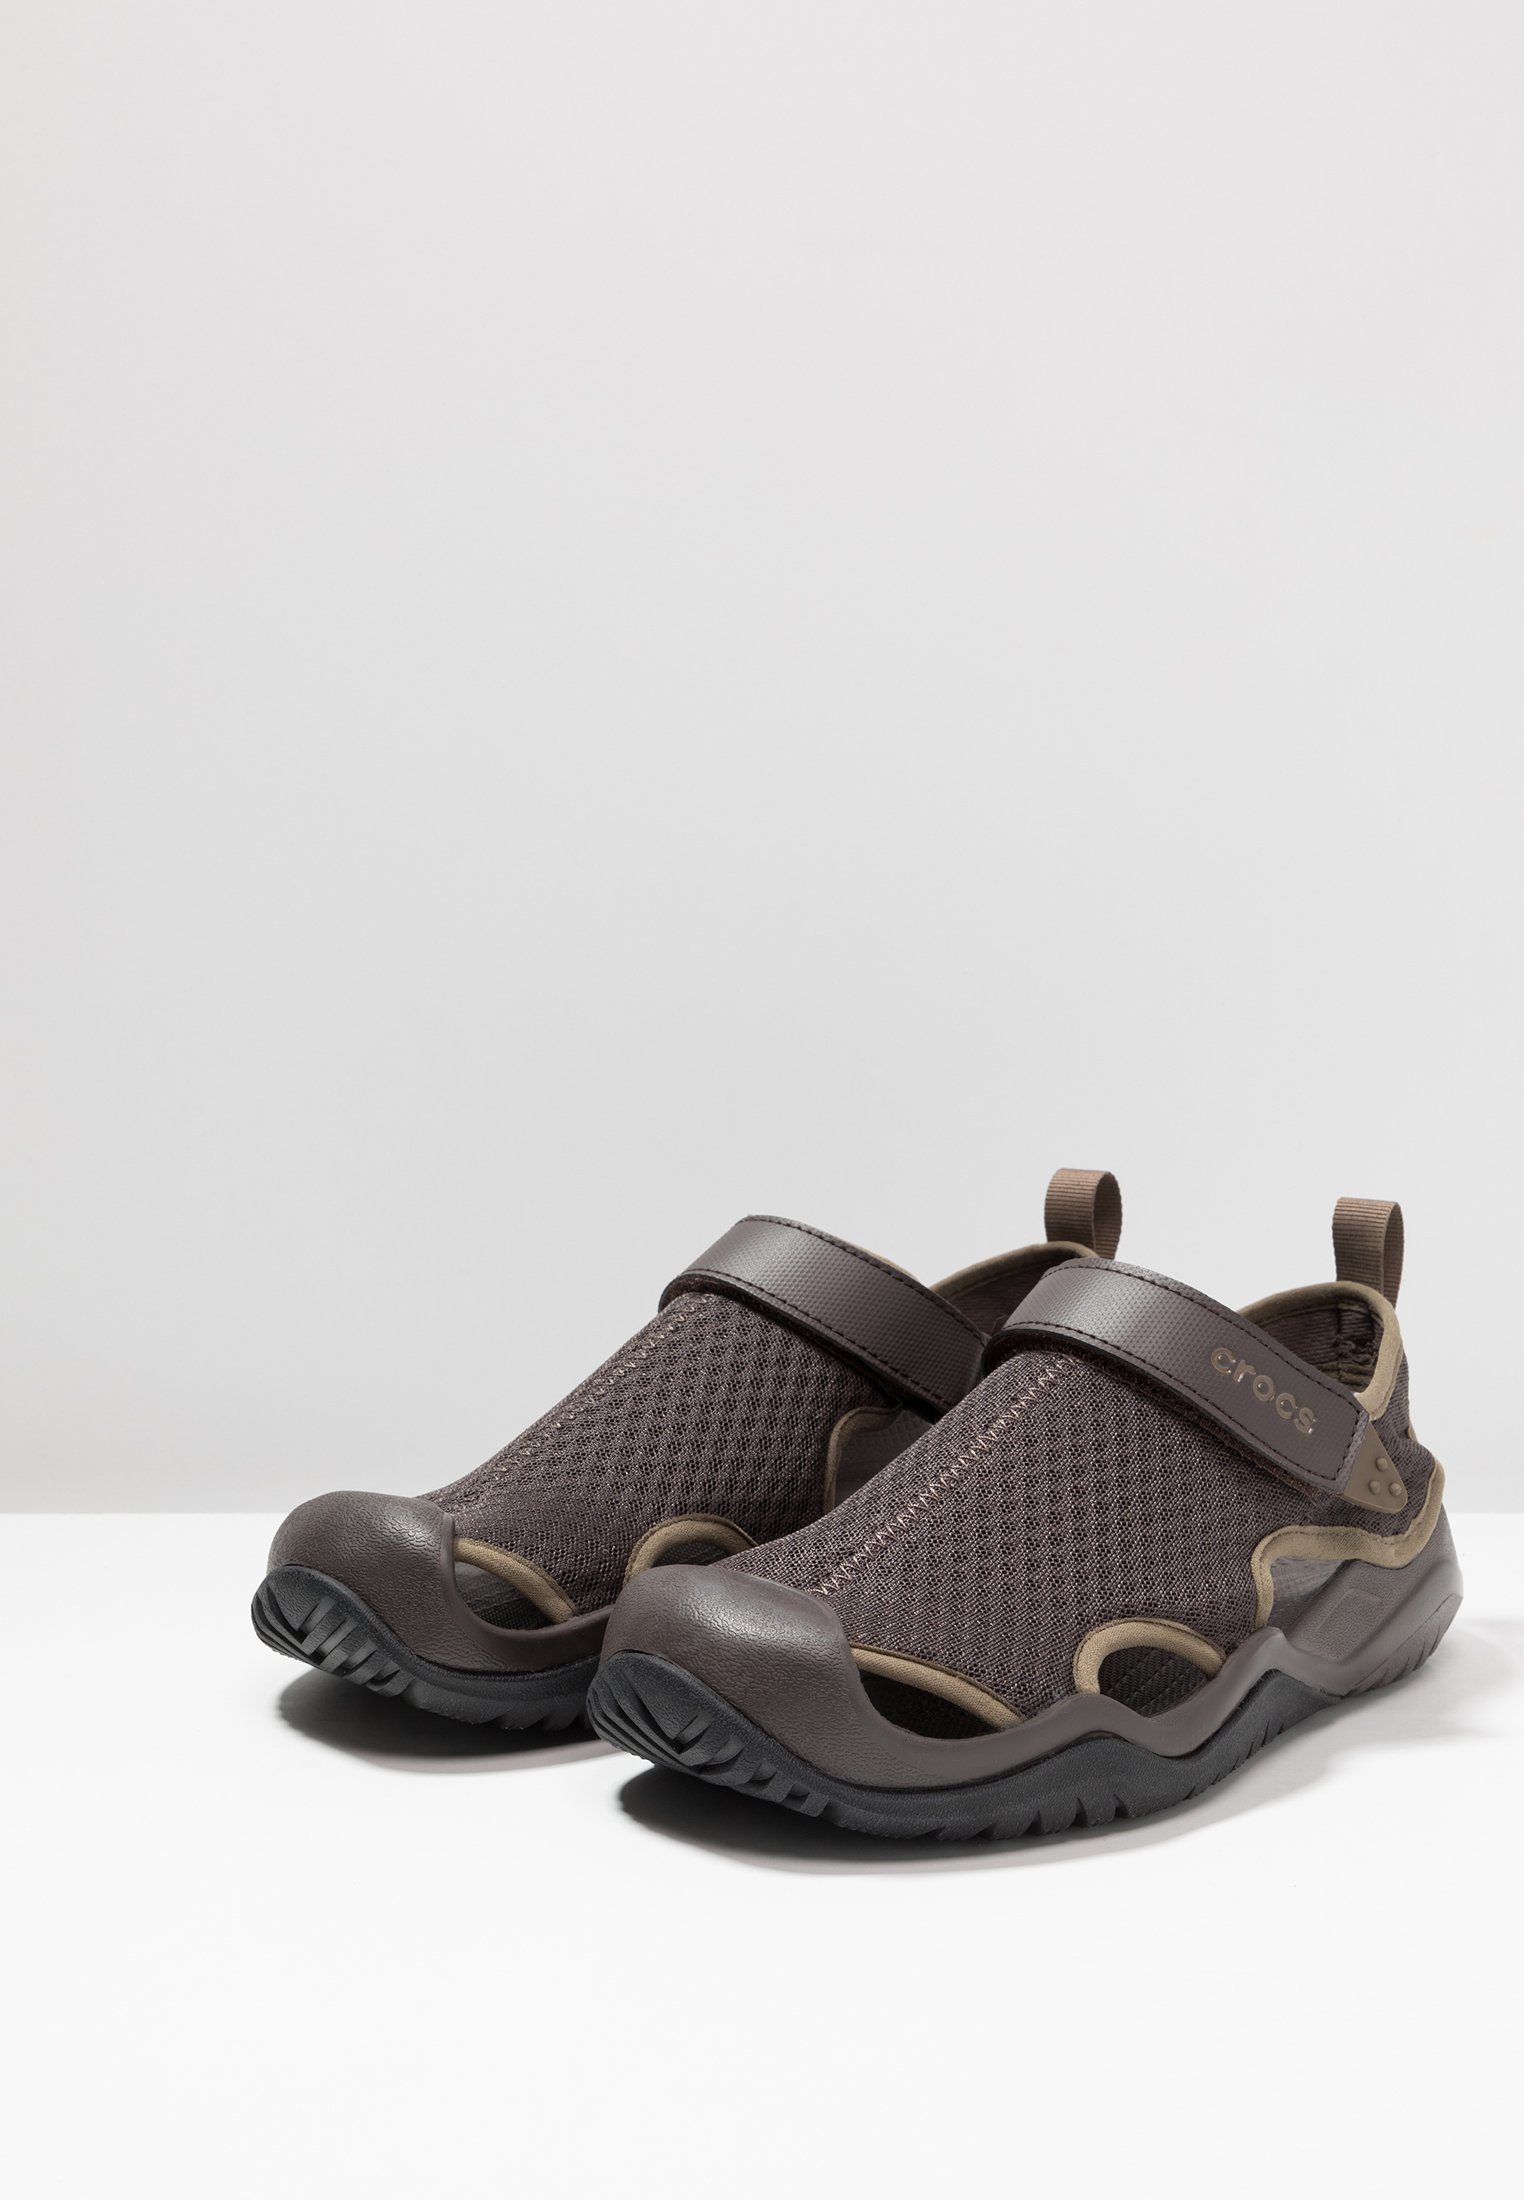 Crocs Riemensandalette - Espresso Black Friday